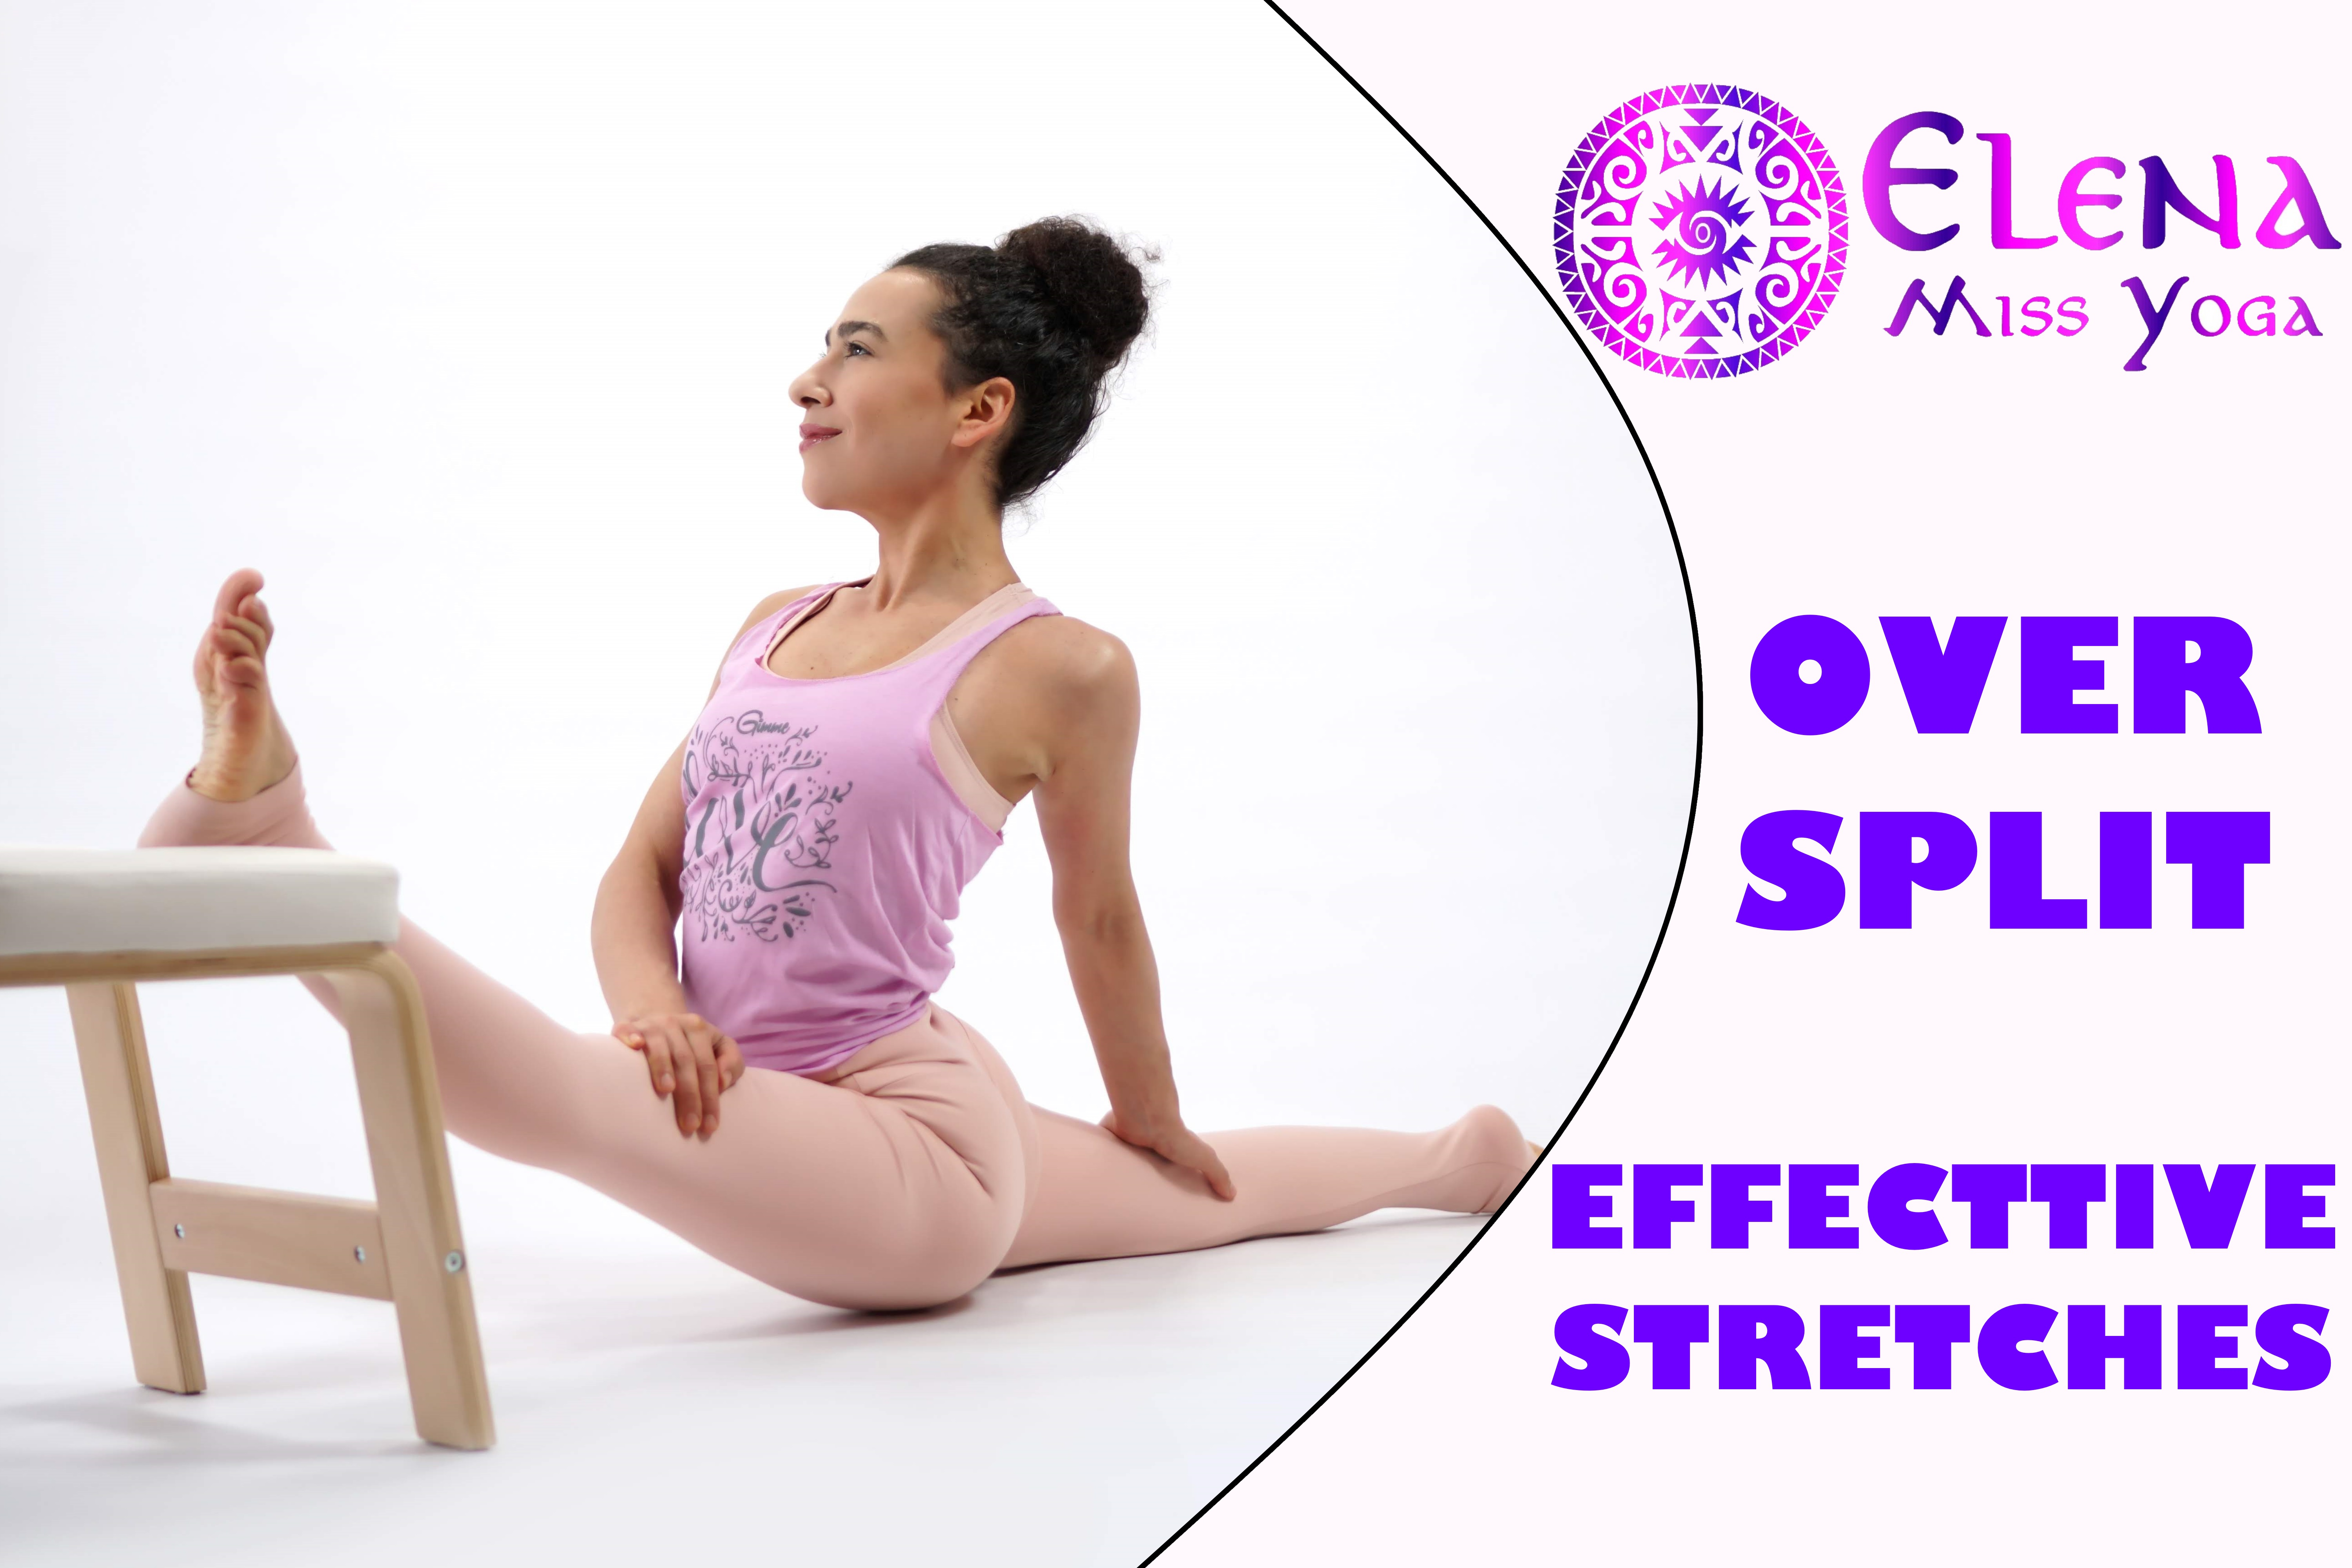 OVERSPLIT GUIDE! HOW TO IMPROVE YOUR YOUR OVERSPLITS WITH EFFECTIVE STRETCHES